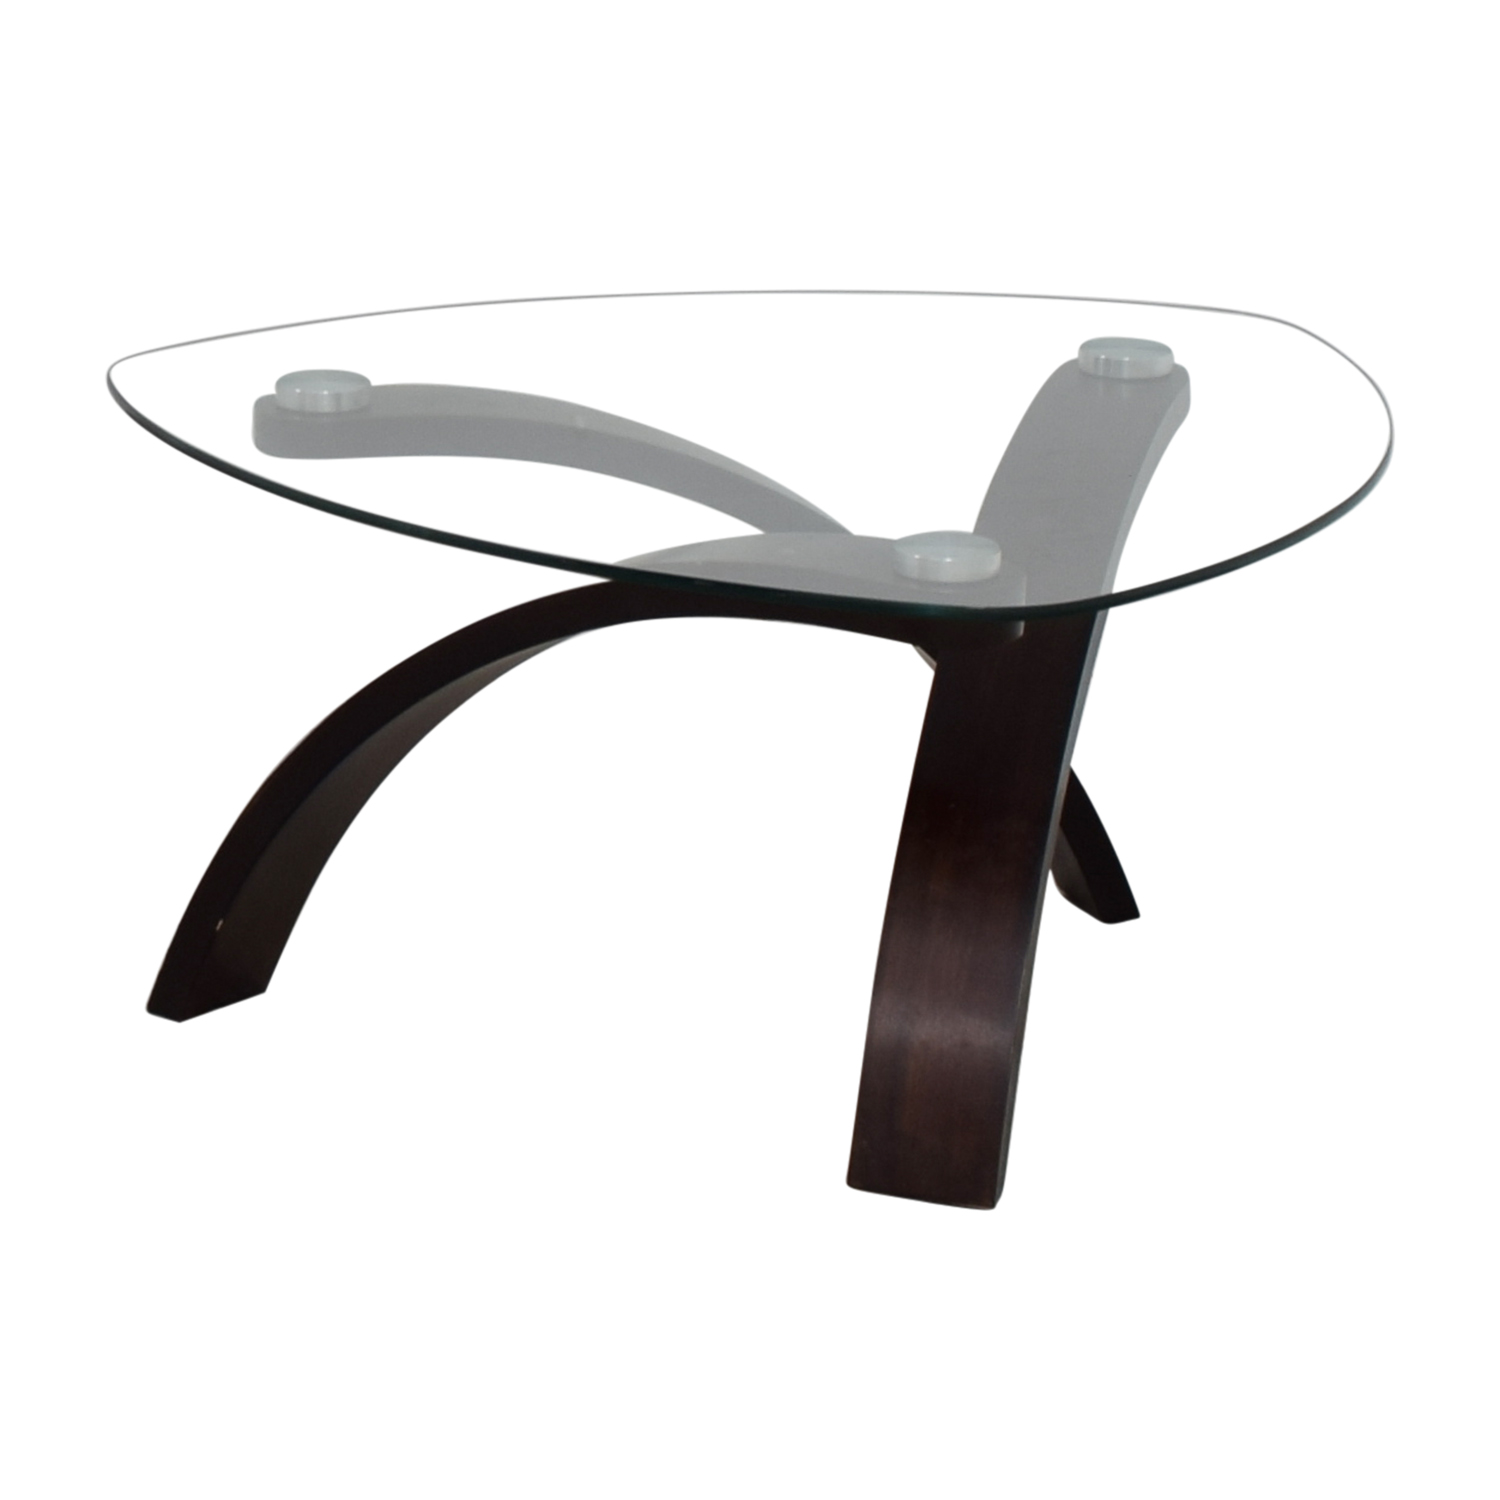 Remarkable 74 Off Rooms To Go Rooms To Go Glass And Wood Coffee Table Tables Bralicious Painted Fabric Chair Ideas Braliciousco